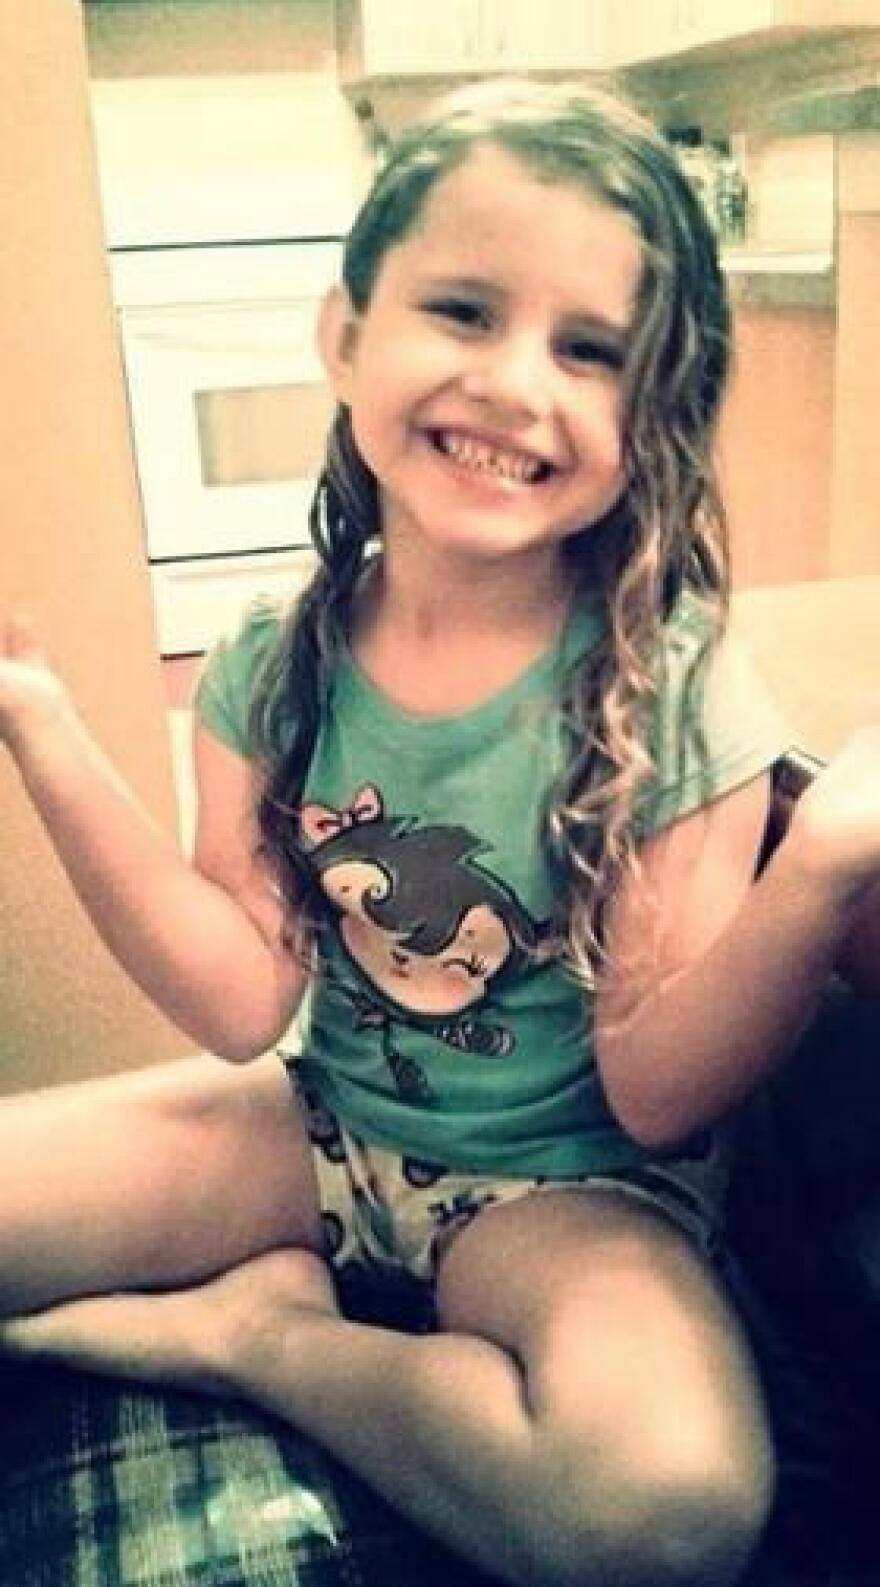 Phoebe Jonchuck, 5, was found dead last month after she was allegedly thrown off a bridge by her father. DCF Officials say not one, but two hotline calls went ignored warning the state to step in.